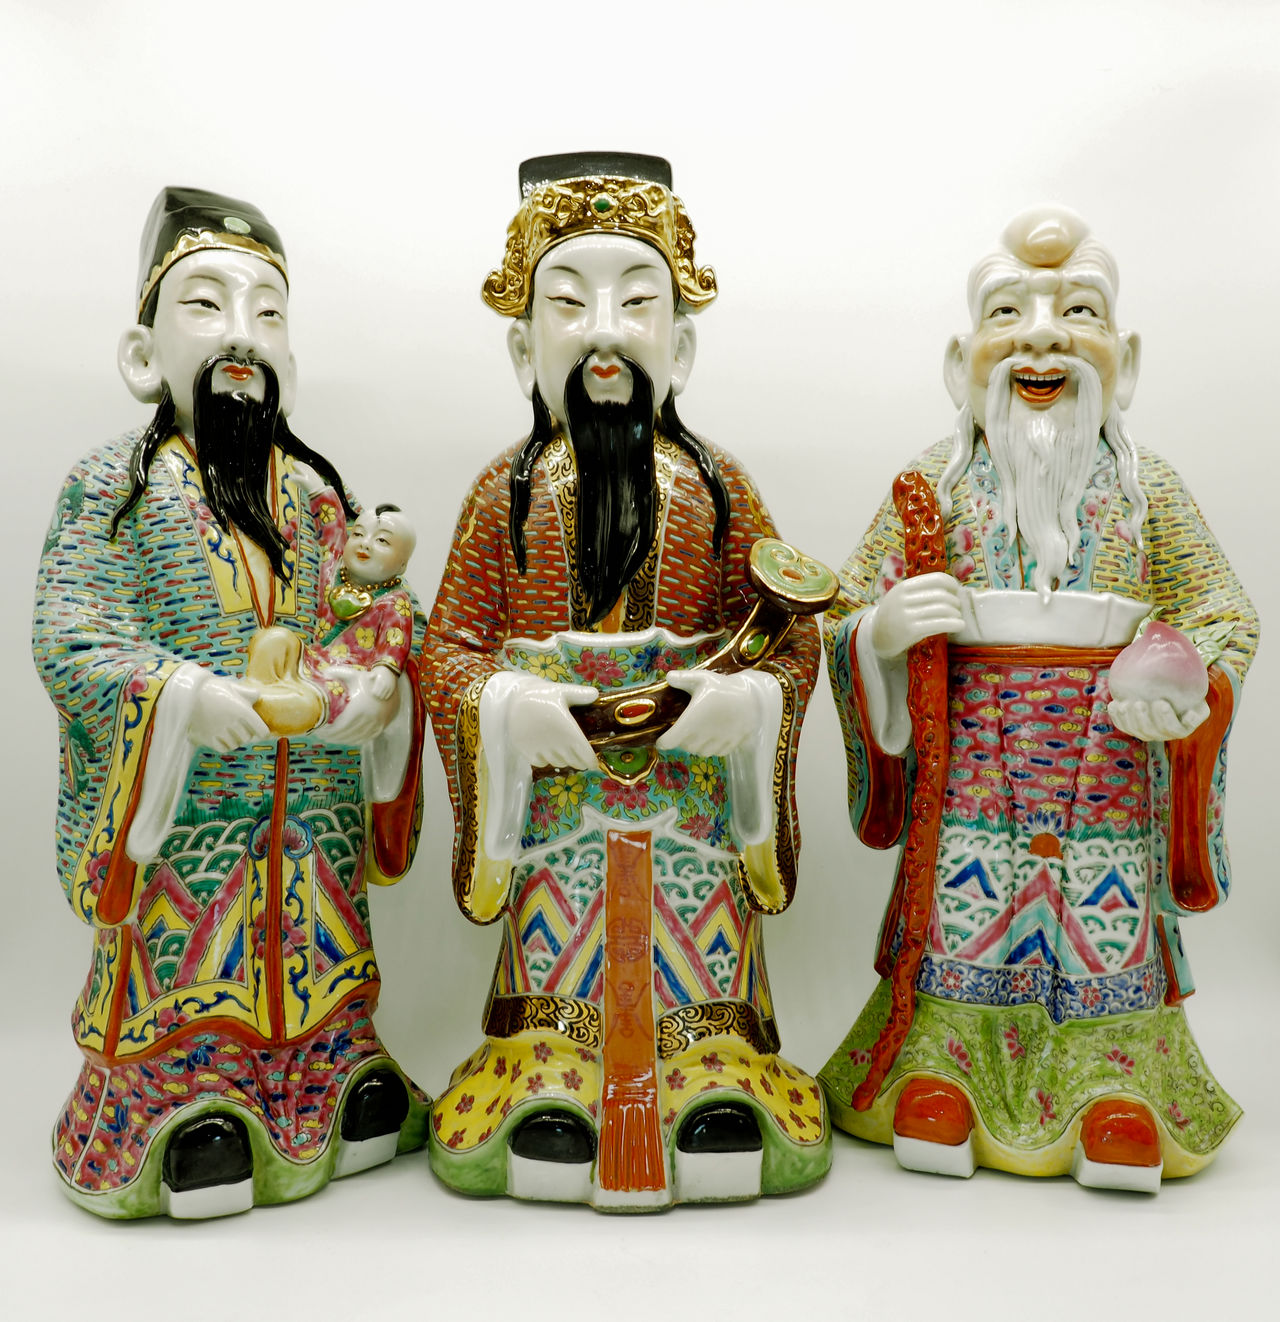 The Sanxing or Fu Lu and Shou are the gods of the three stars and the three qualities of Prosperity (Fu), Status (Lu) and Longevity (Shou) in Chinese Religion. Art Cai Zi Shou Chinese Culture Decoration Education Fu Lu Shou Happiness Indoor Long Life Longevity Prosperity Respect Sanxing Statue Status Three Gods Three Stars Traditional